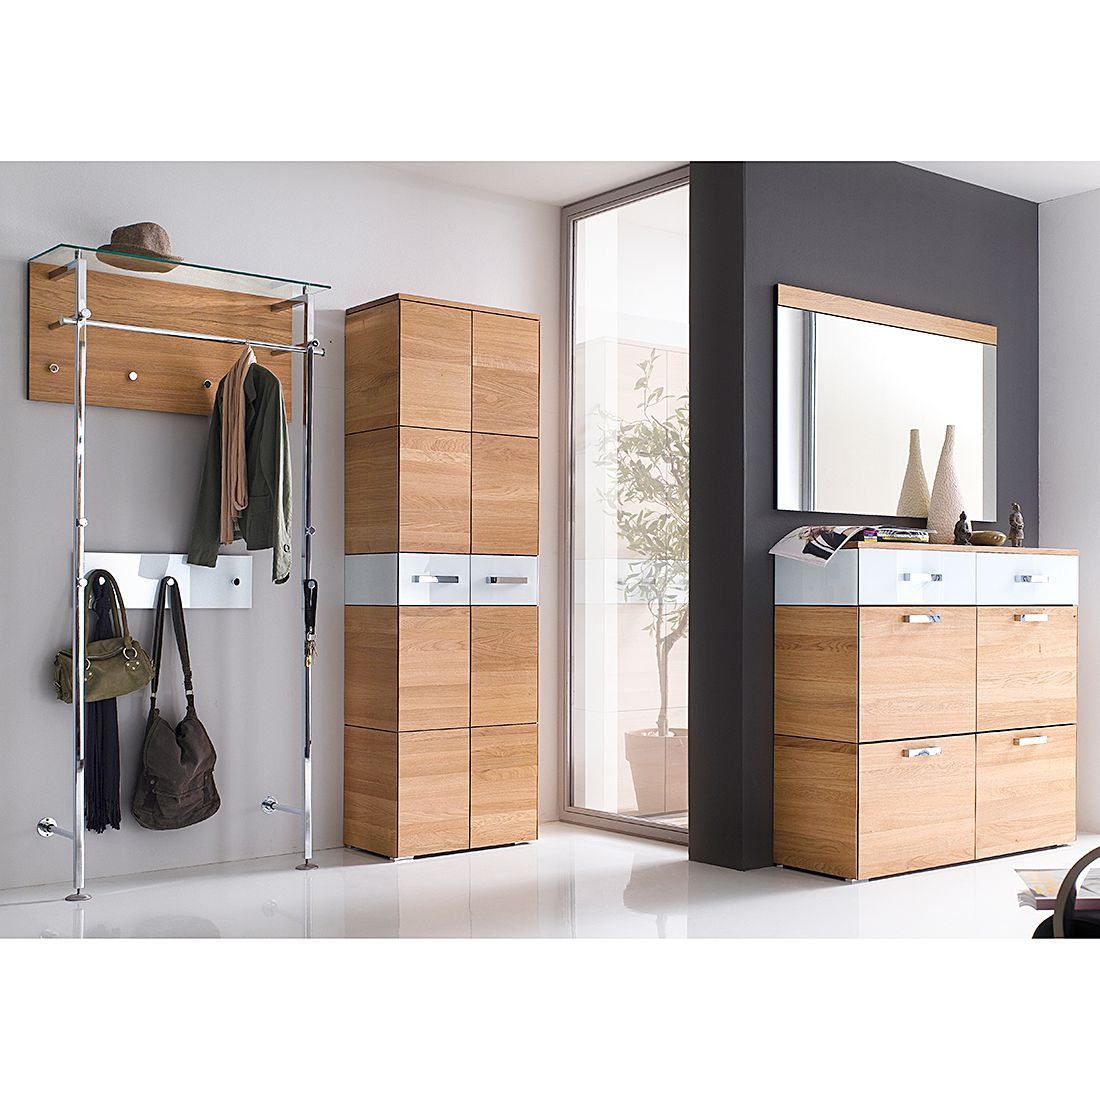 garderobe glas g nstig kaufen. Black Bedroom Furniture Sets. Home Design Ideas